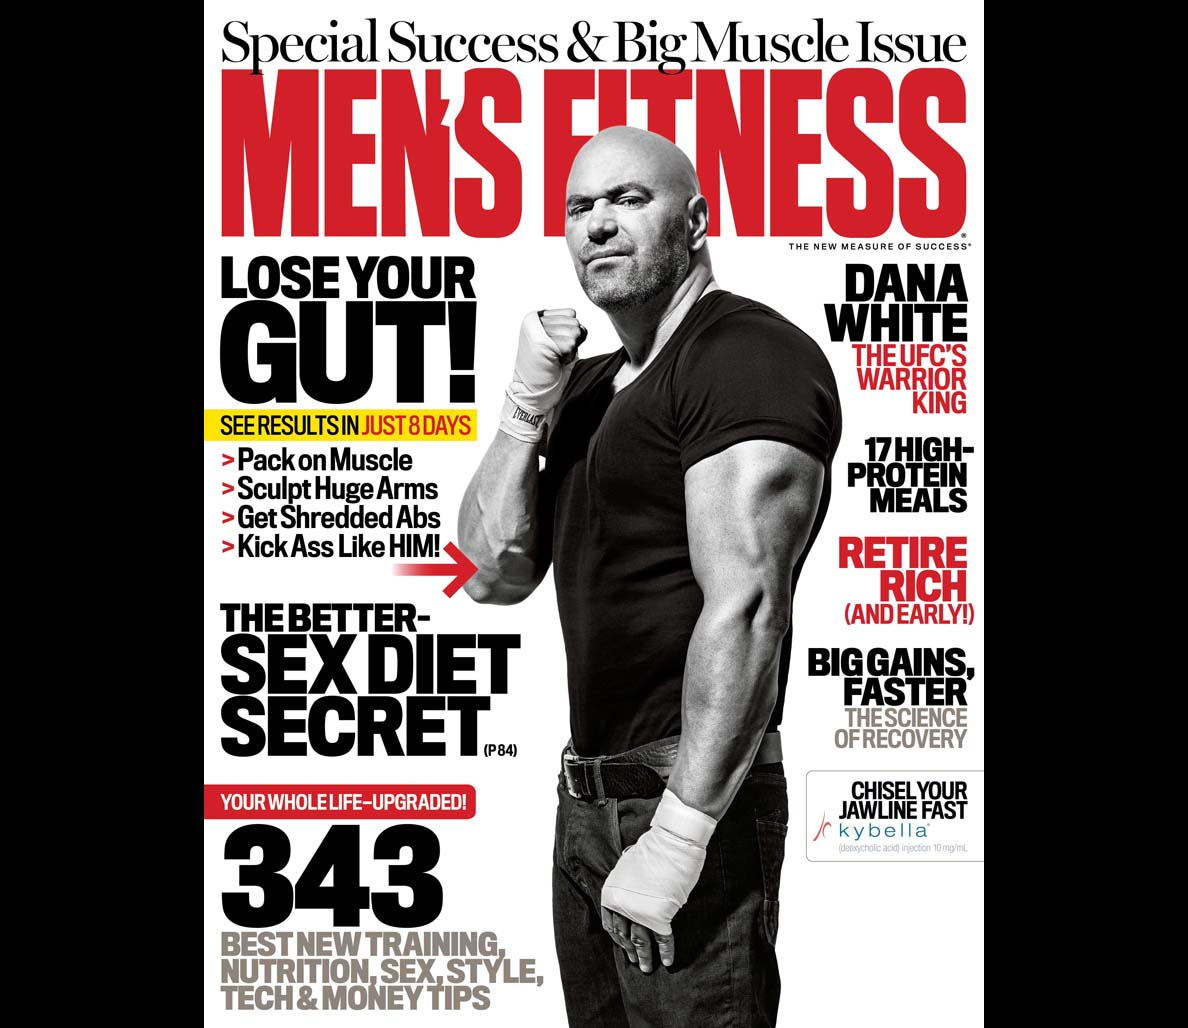 Dana White in Men's Fitness Magazine. Photographed by Per Bernal.